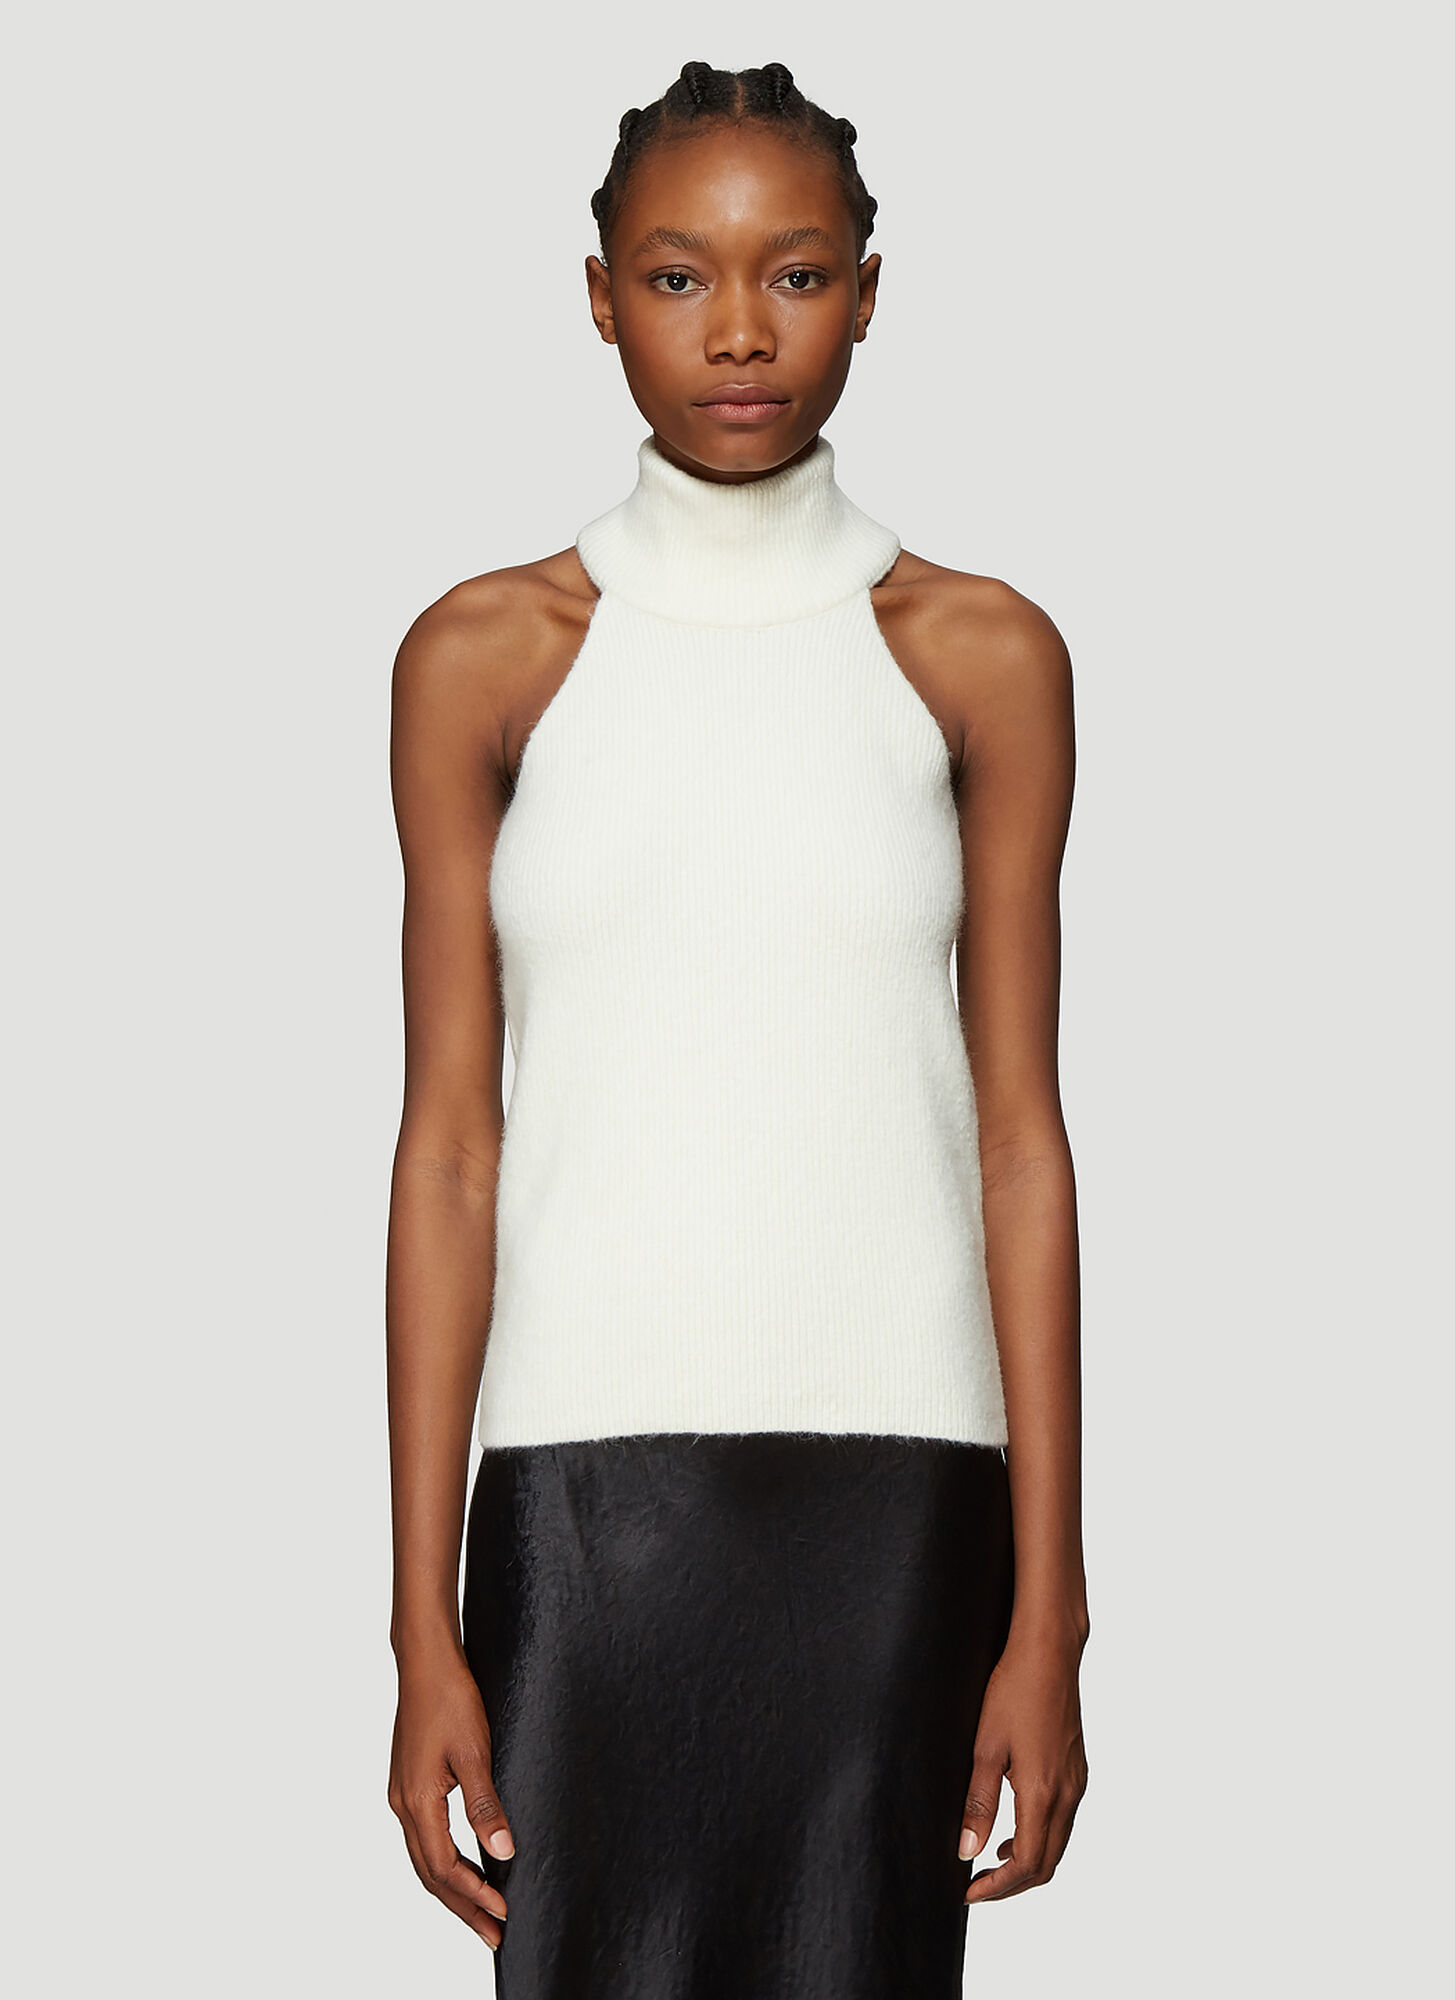 Photo of Jacquemus La Maille Baho Knitted Top in Cream - Jacquemus Knitwear